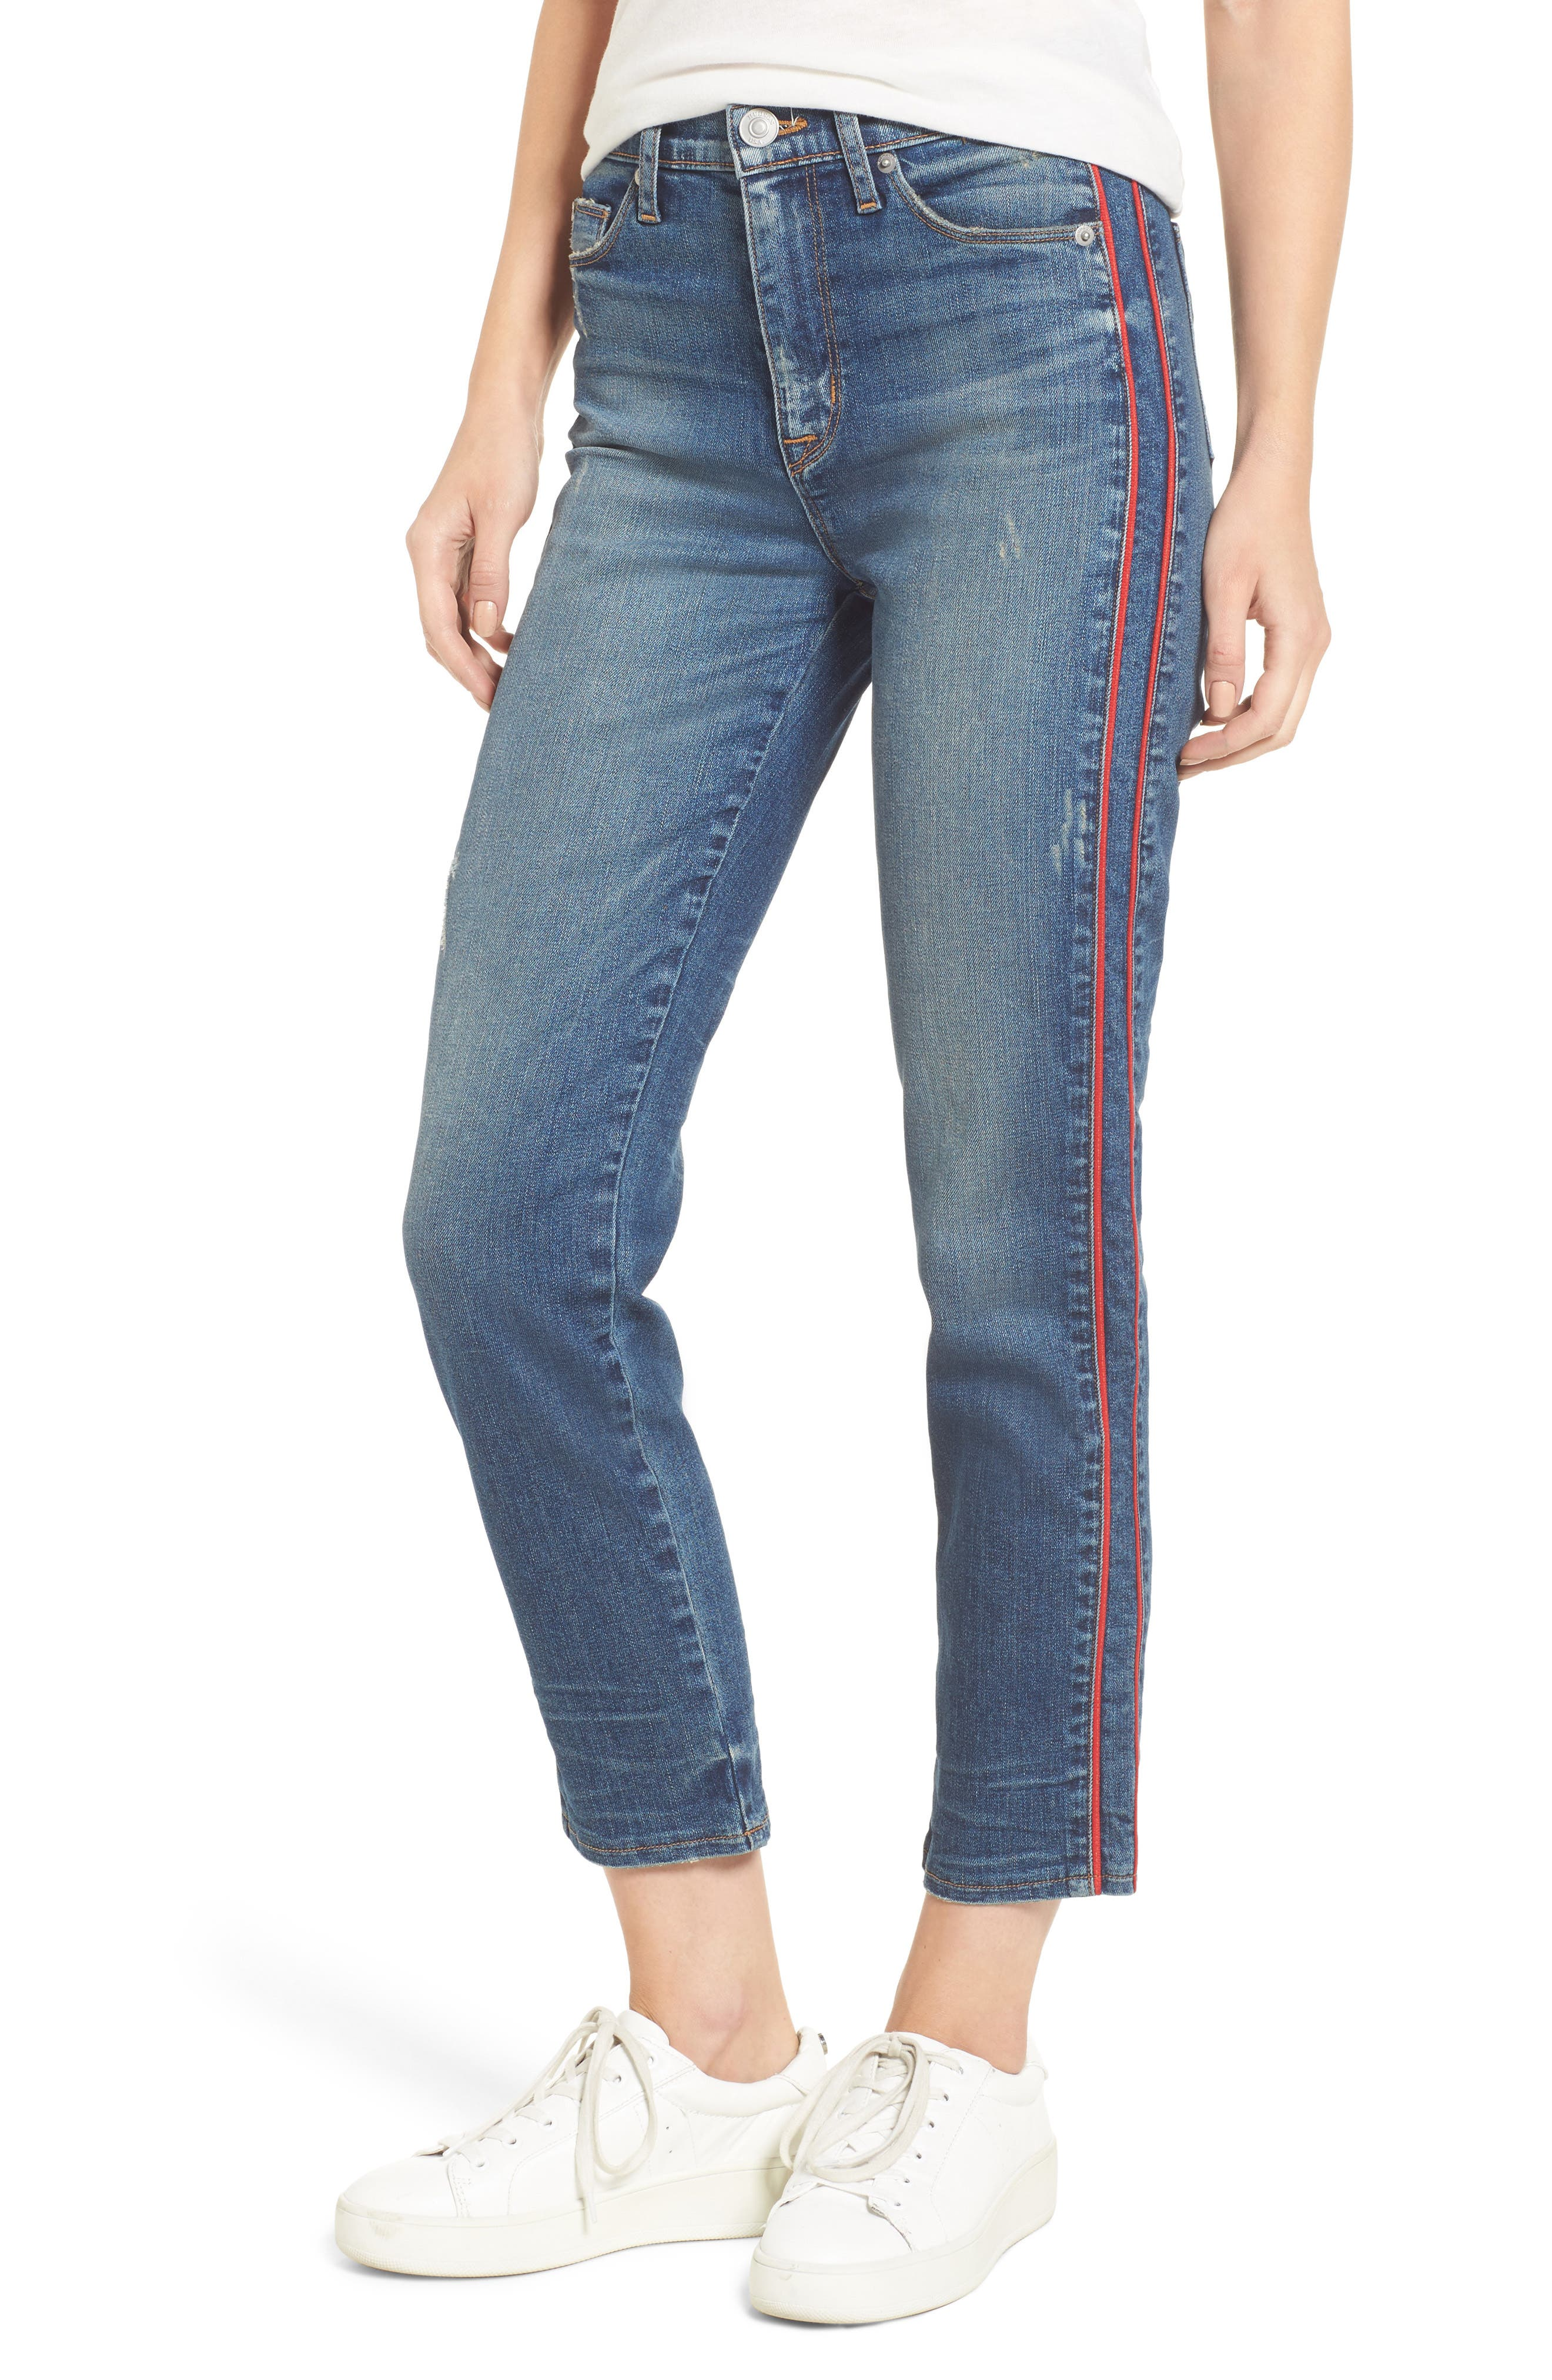 Zoeey High Waist Crop Jeans,                         Main,                         color, Reform